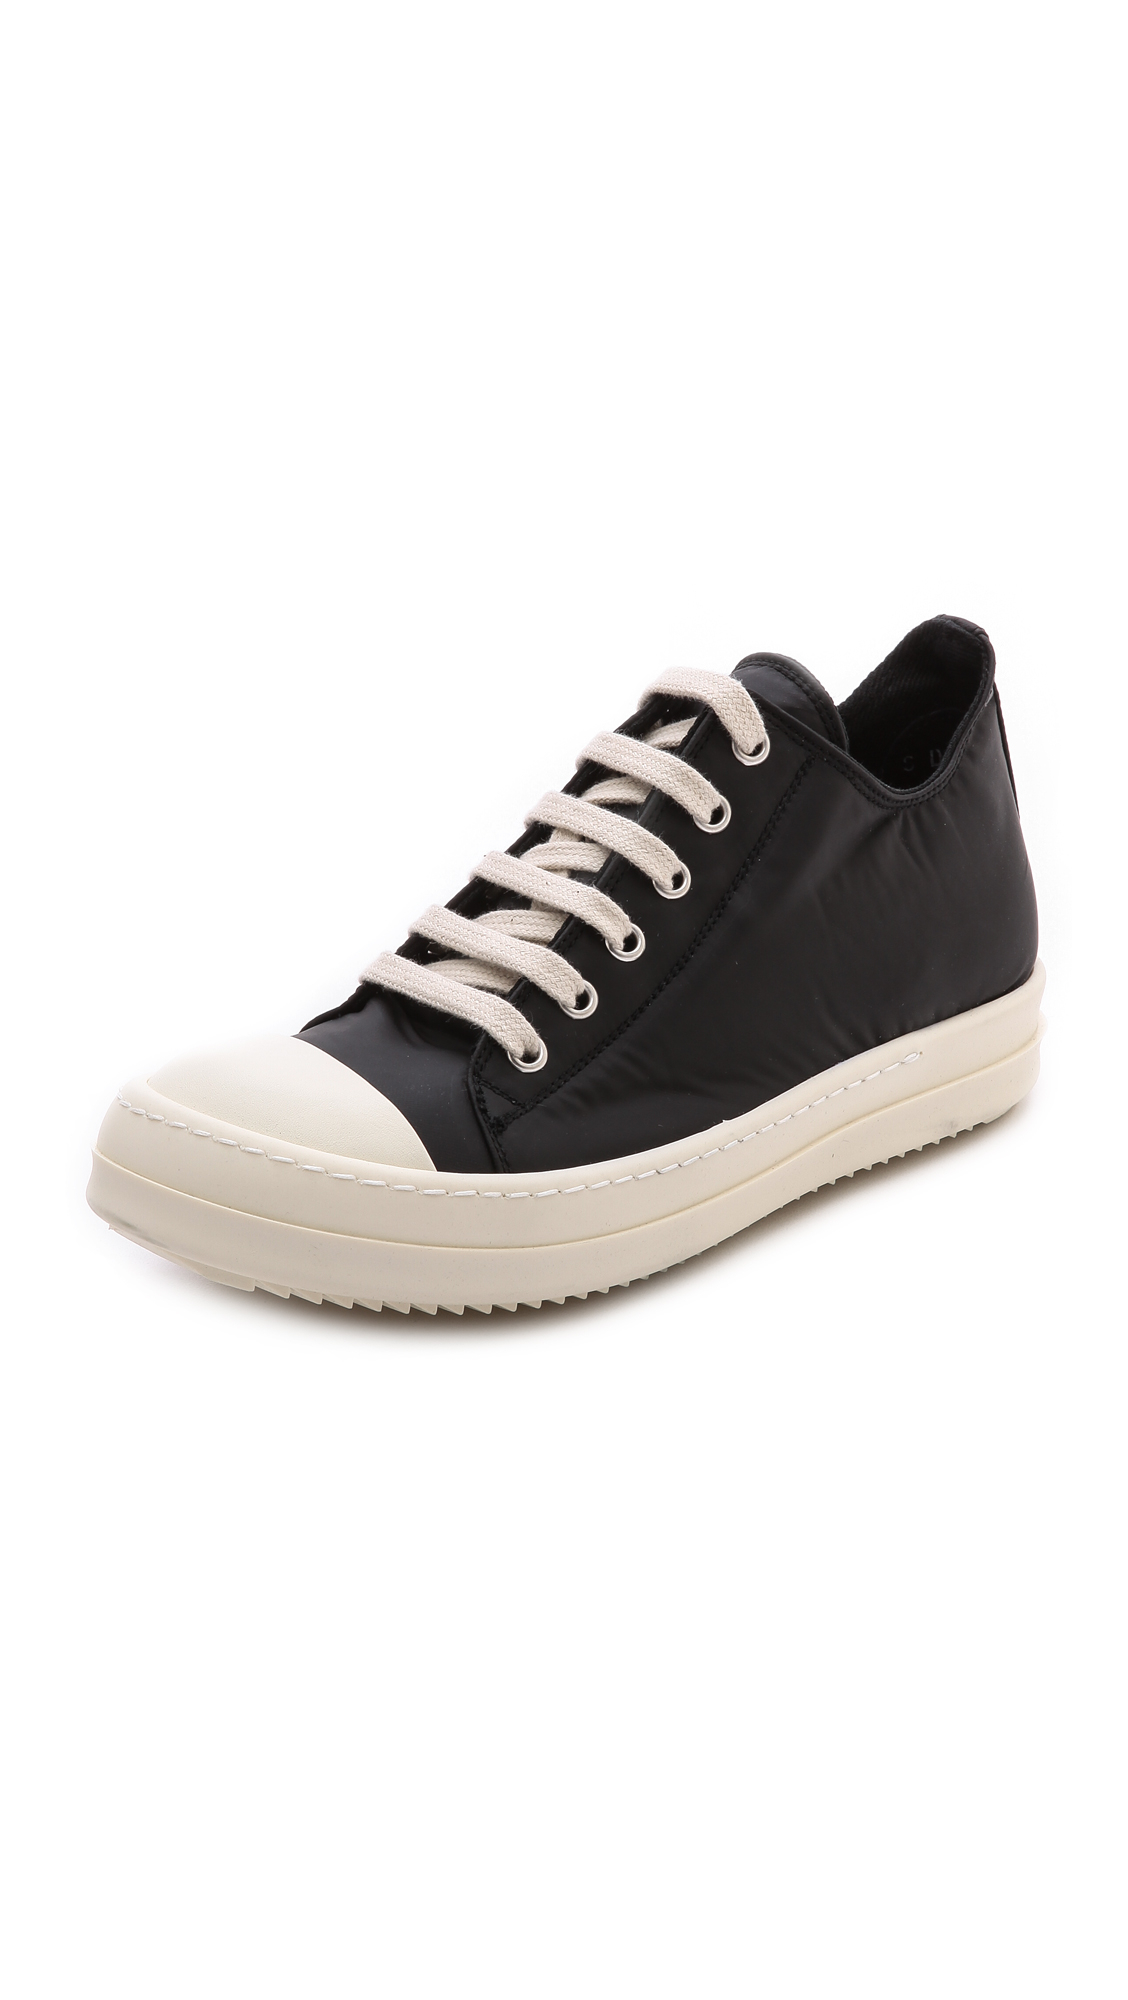 Free shipping BOTH ways on Sneakers & Athletic Shoes, Black, Men, from our vast selection of styles. Fast delivery, and 24/7/ real-person service with a smile. Click or call